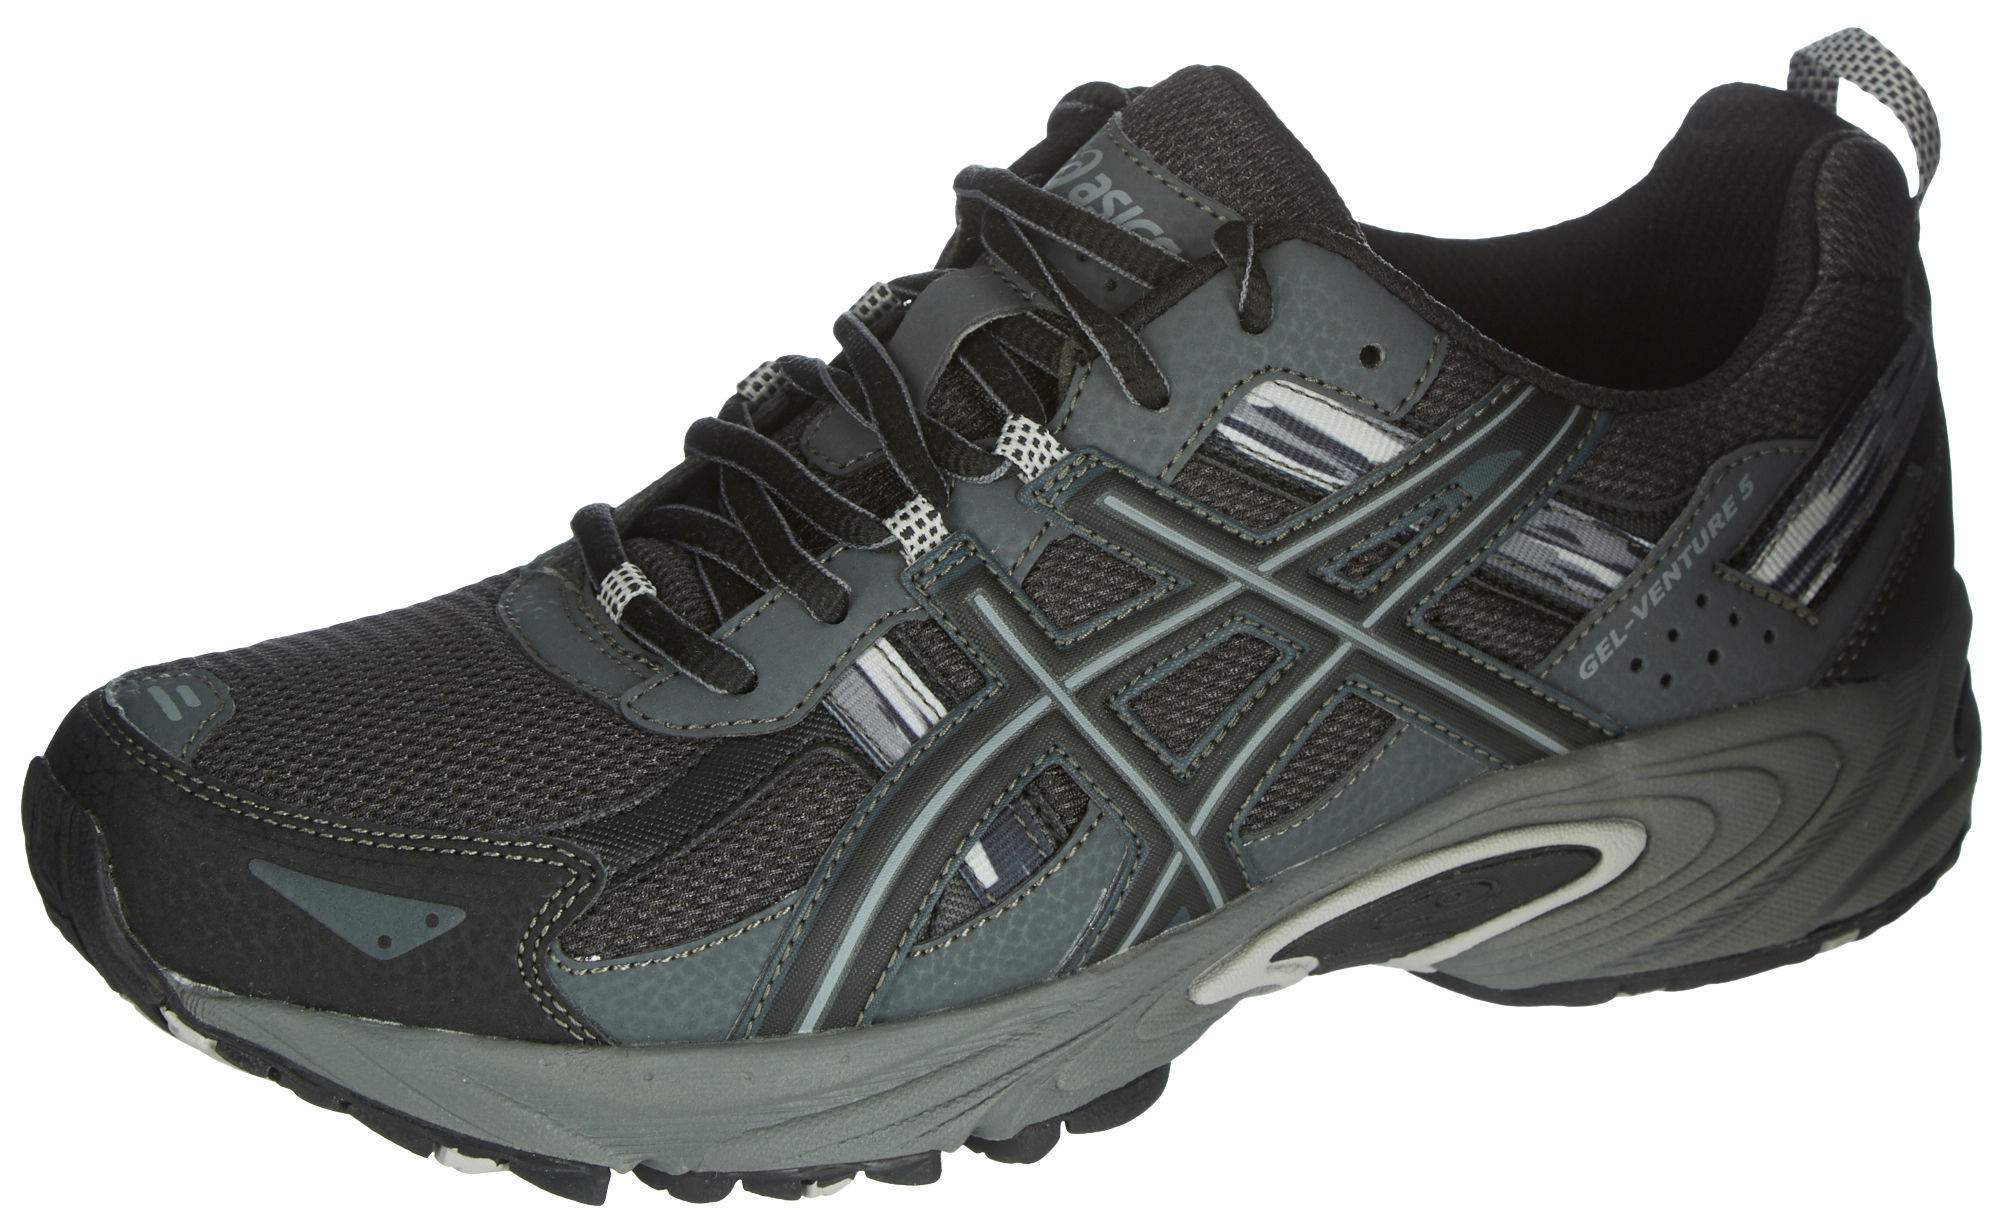 Asics Mens Gel Venture 5 Running Shoes | eBay